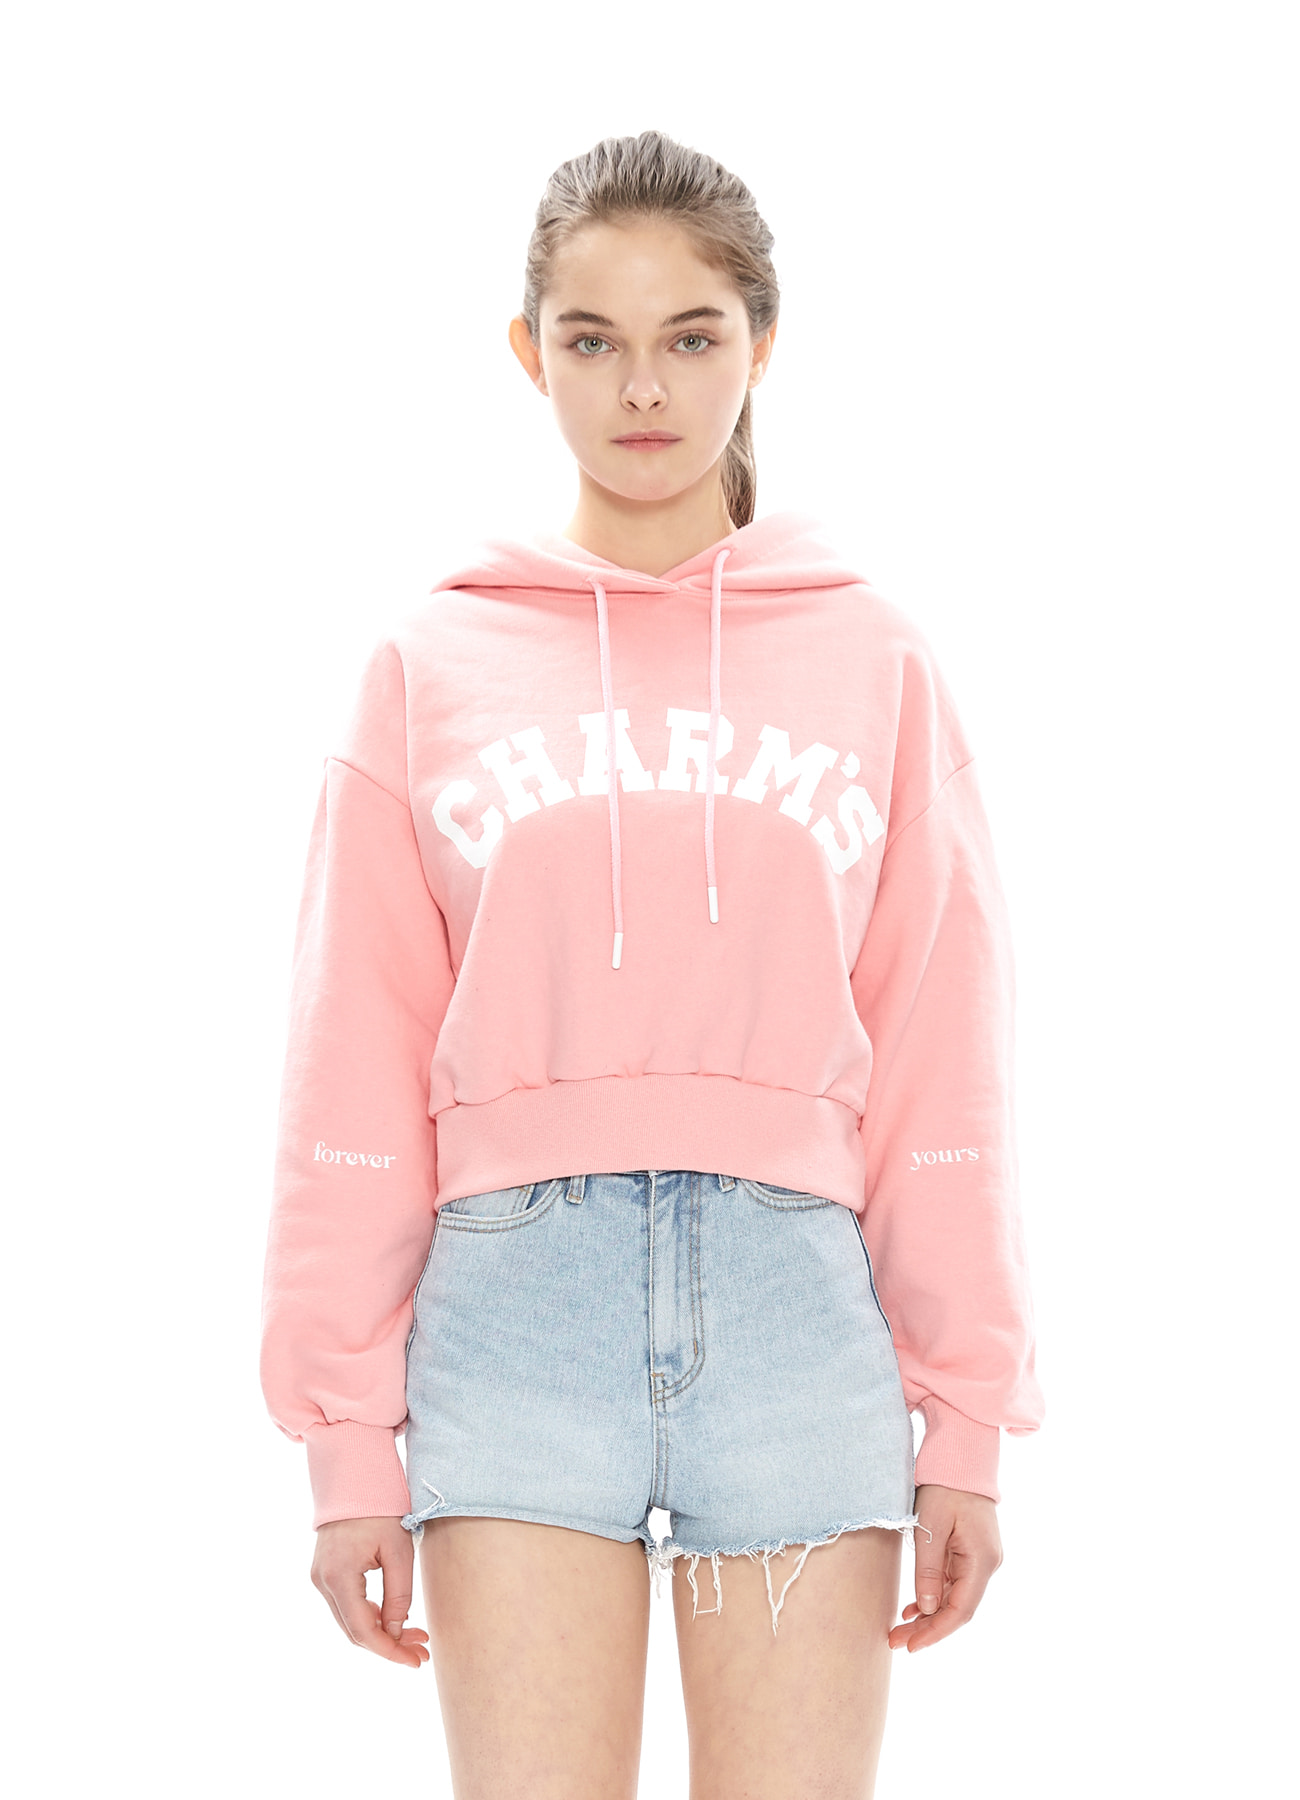 CHARMS FADED LOGO CROP HOODY_PK